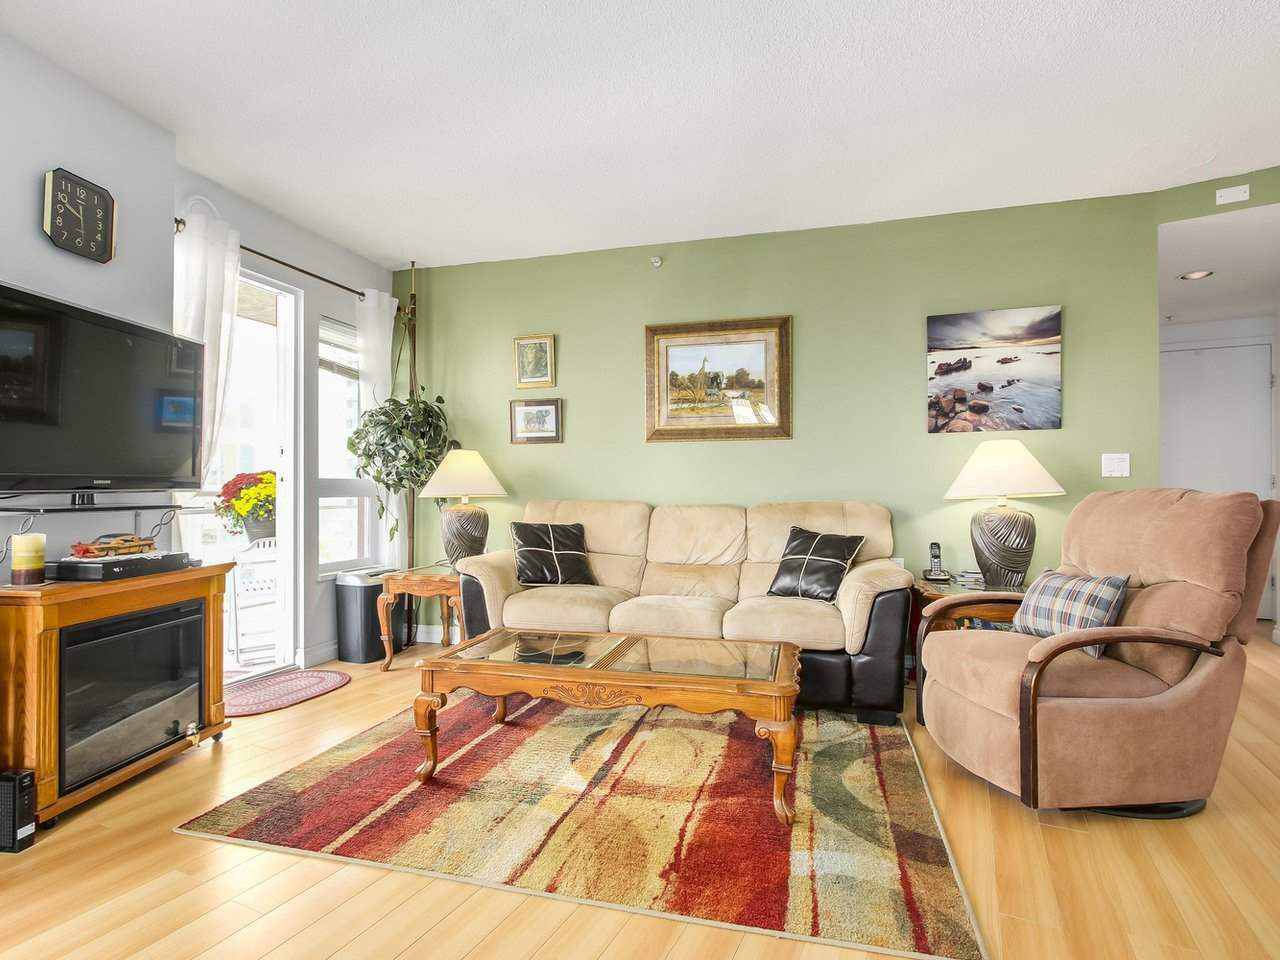 """Photo 8: Photos: 801 121 W 15TH Street in North Vancouver: Central Lonsdale Condo for sale in """"ALEGRIA"""" : MLS®# R2196958"""